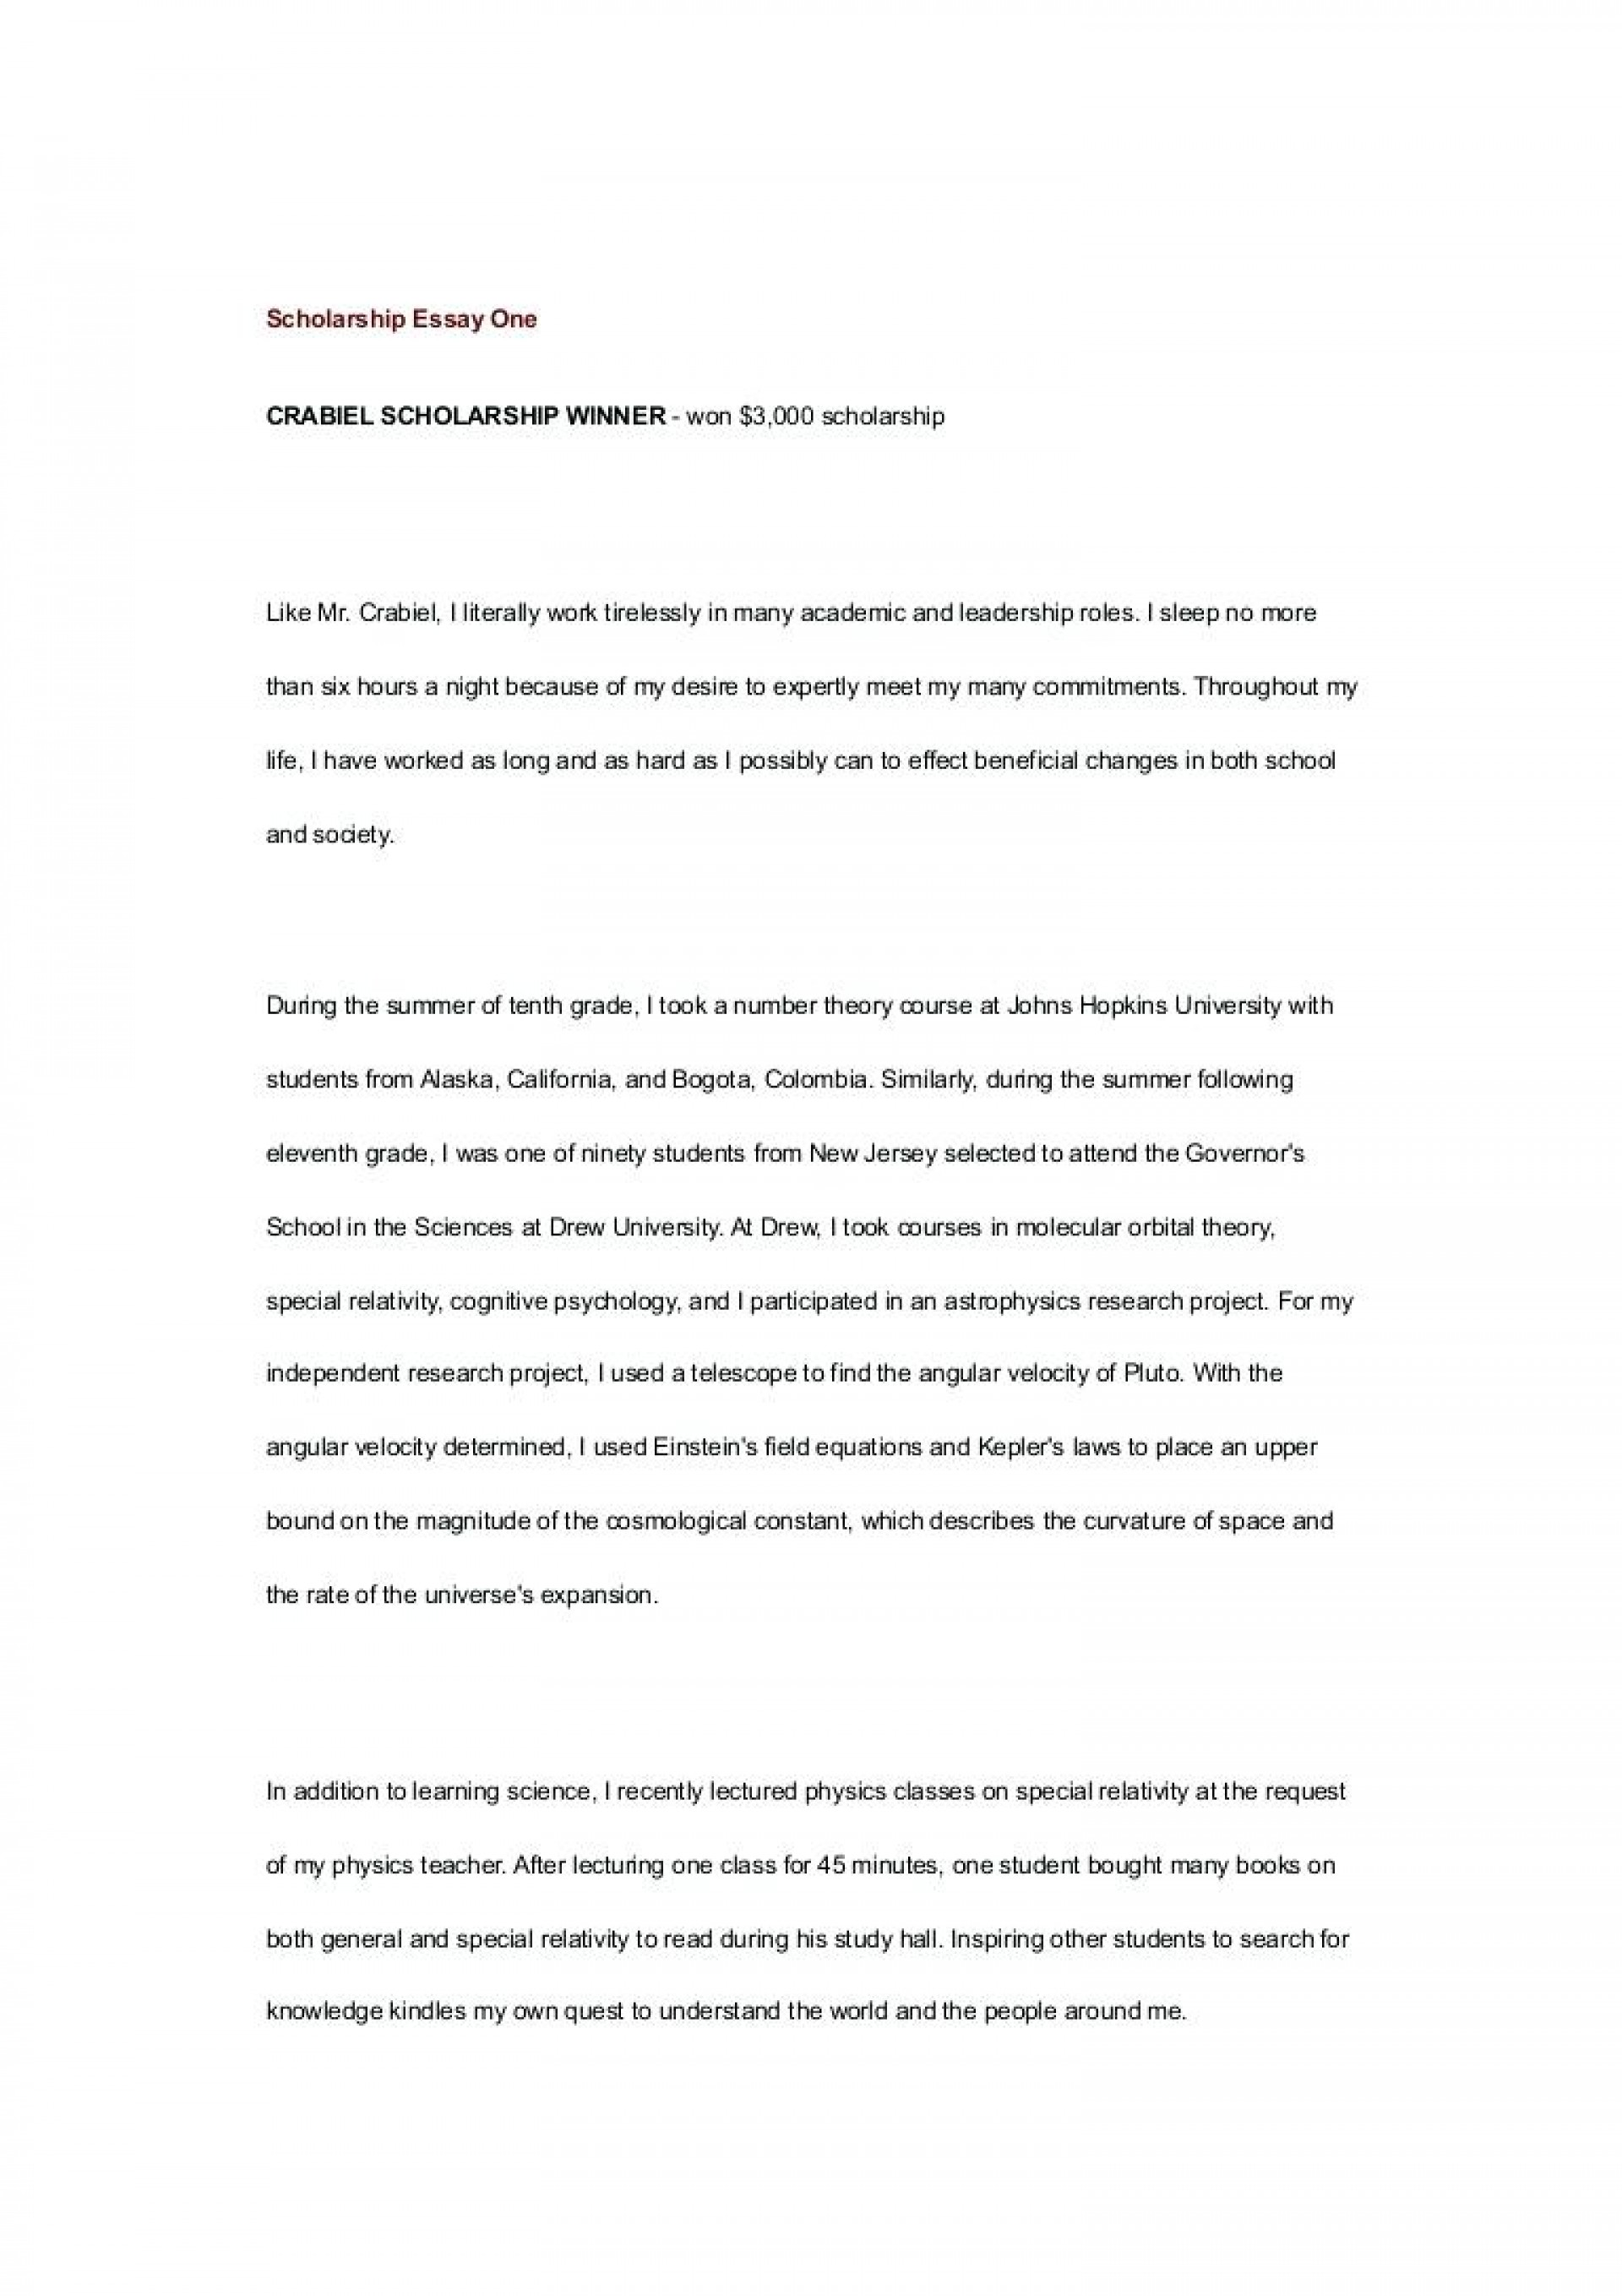 010 Essay Example No Scholarship College Application Template Legit Resume Cover Letter Thumbnail For Sample Wondrous Scholarships High School Seniors 2019 1920